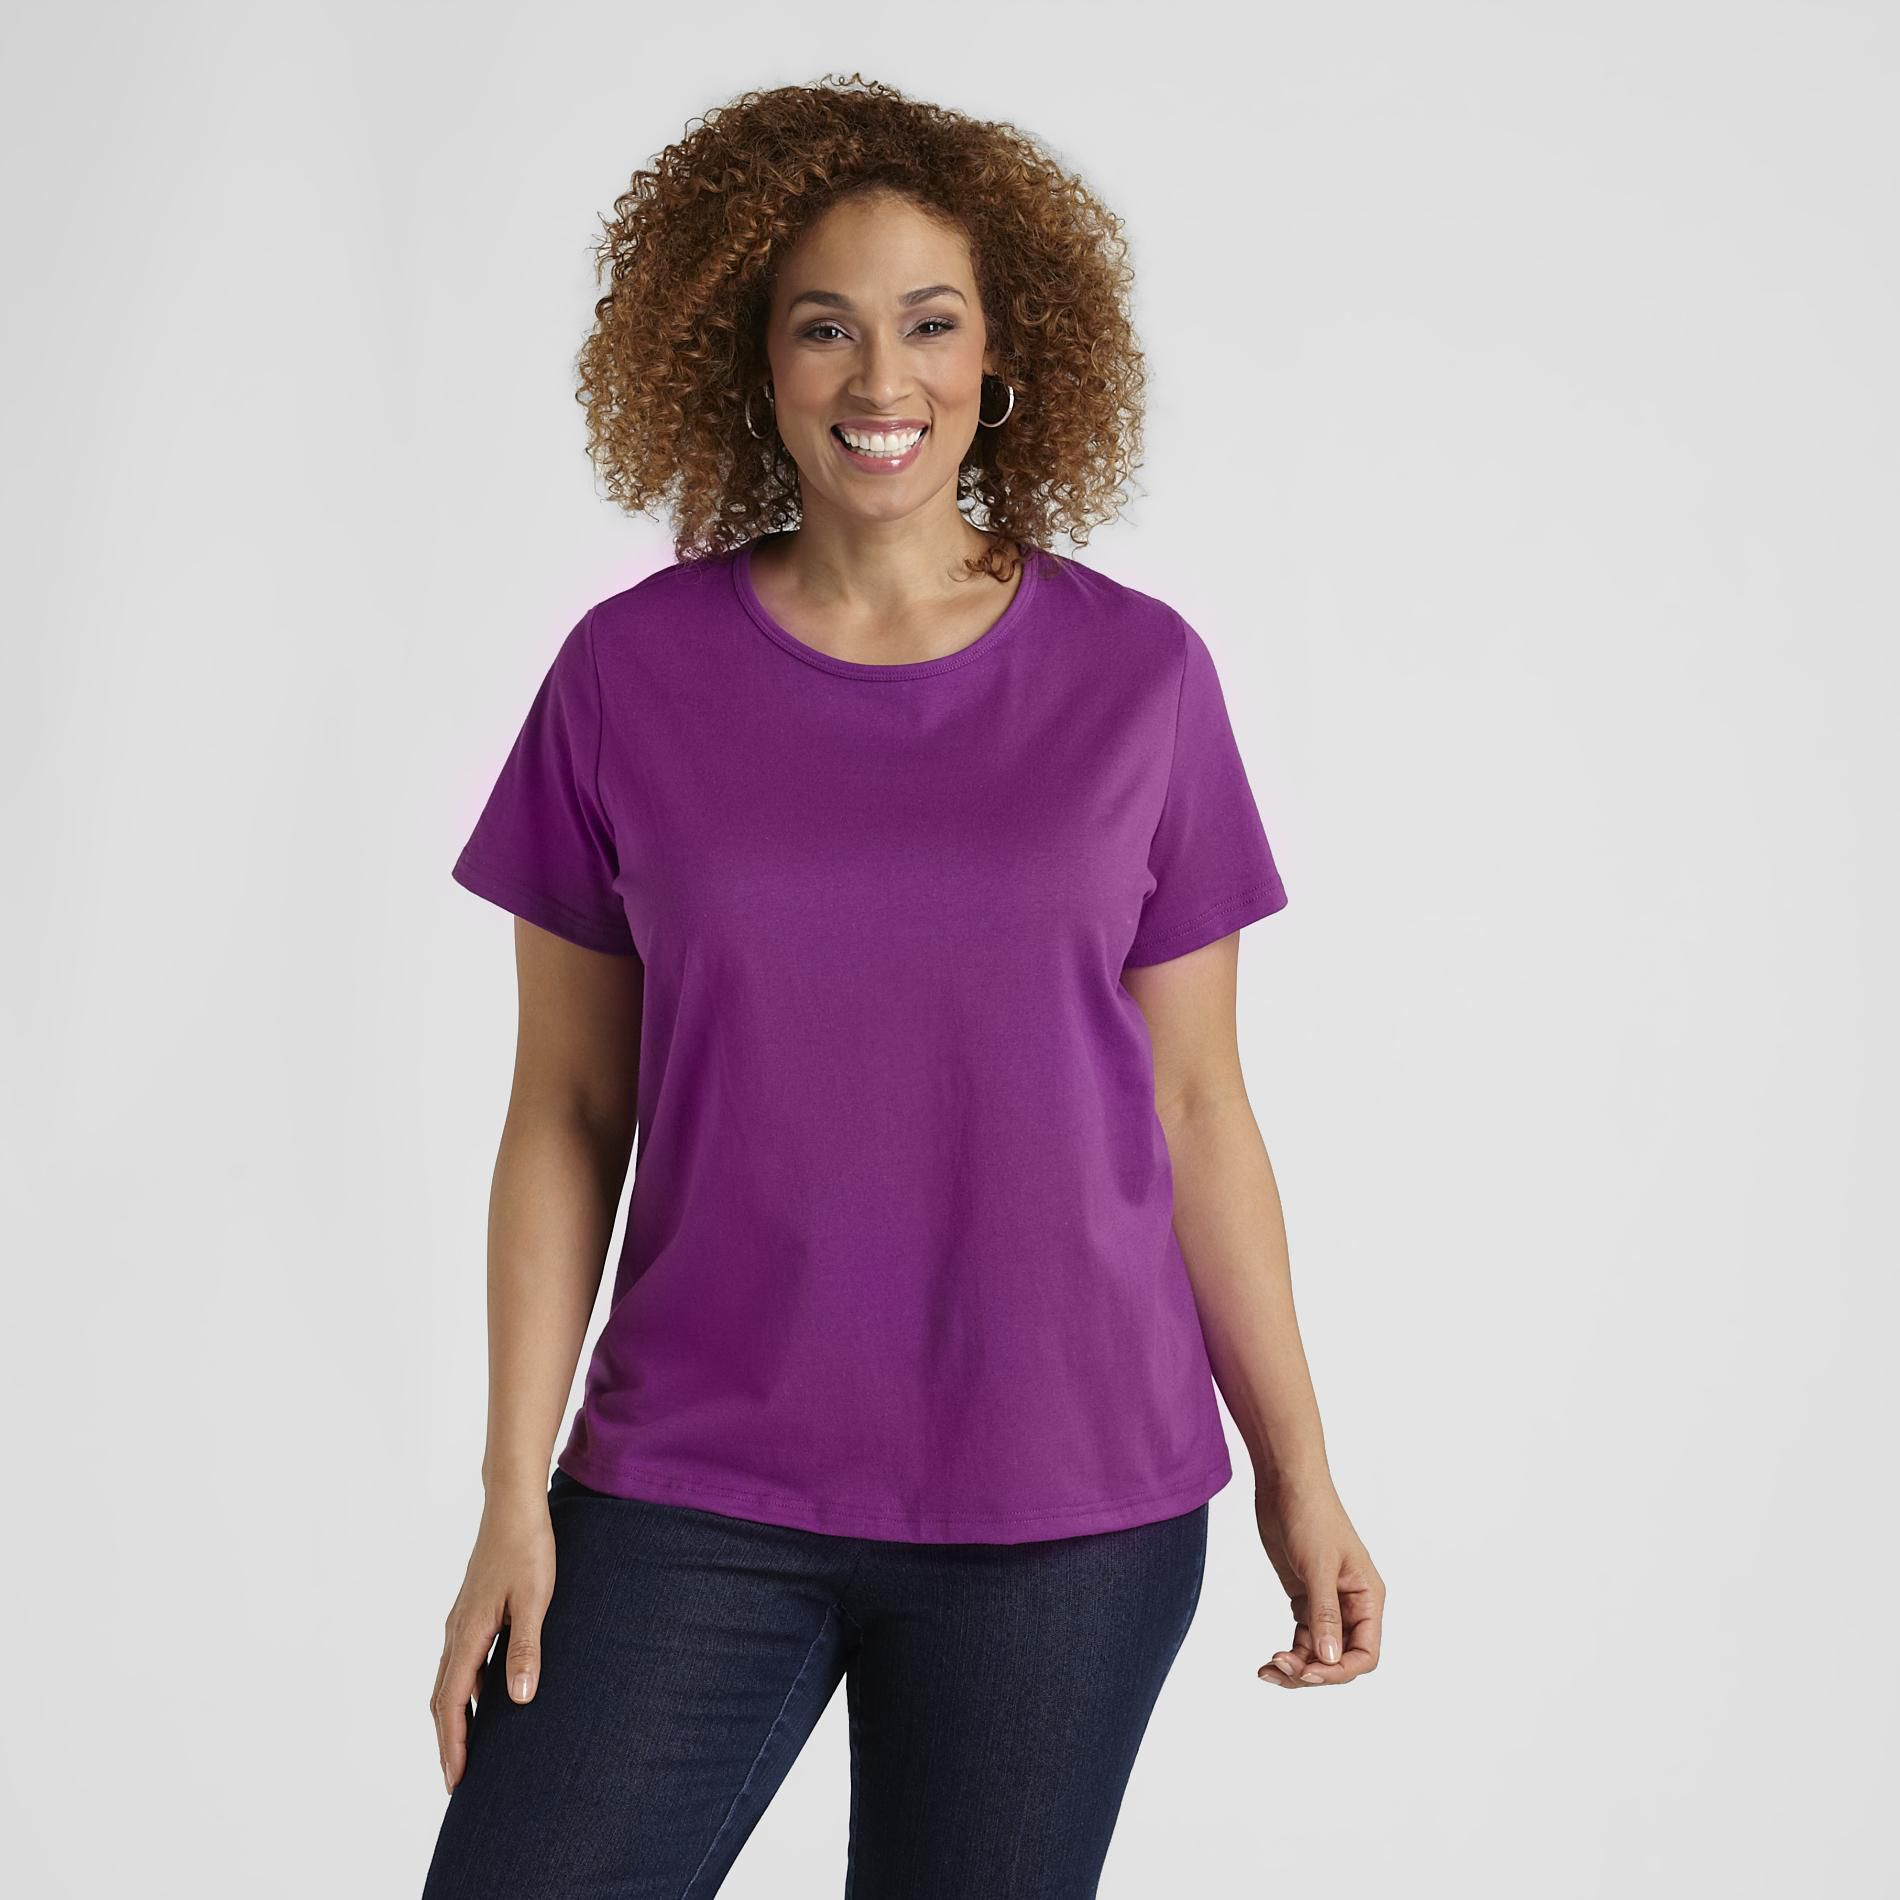 Basic Editions Women's Plus Relaxed-Fit T-Shirt at Kmart.com